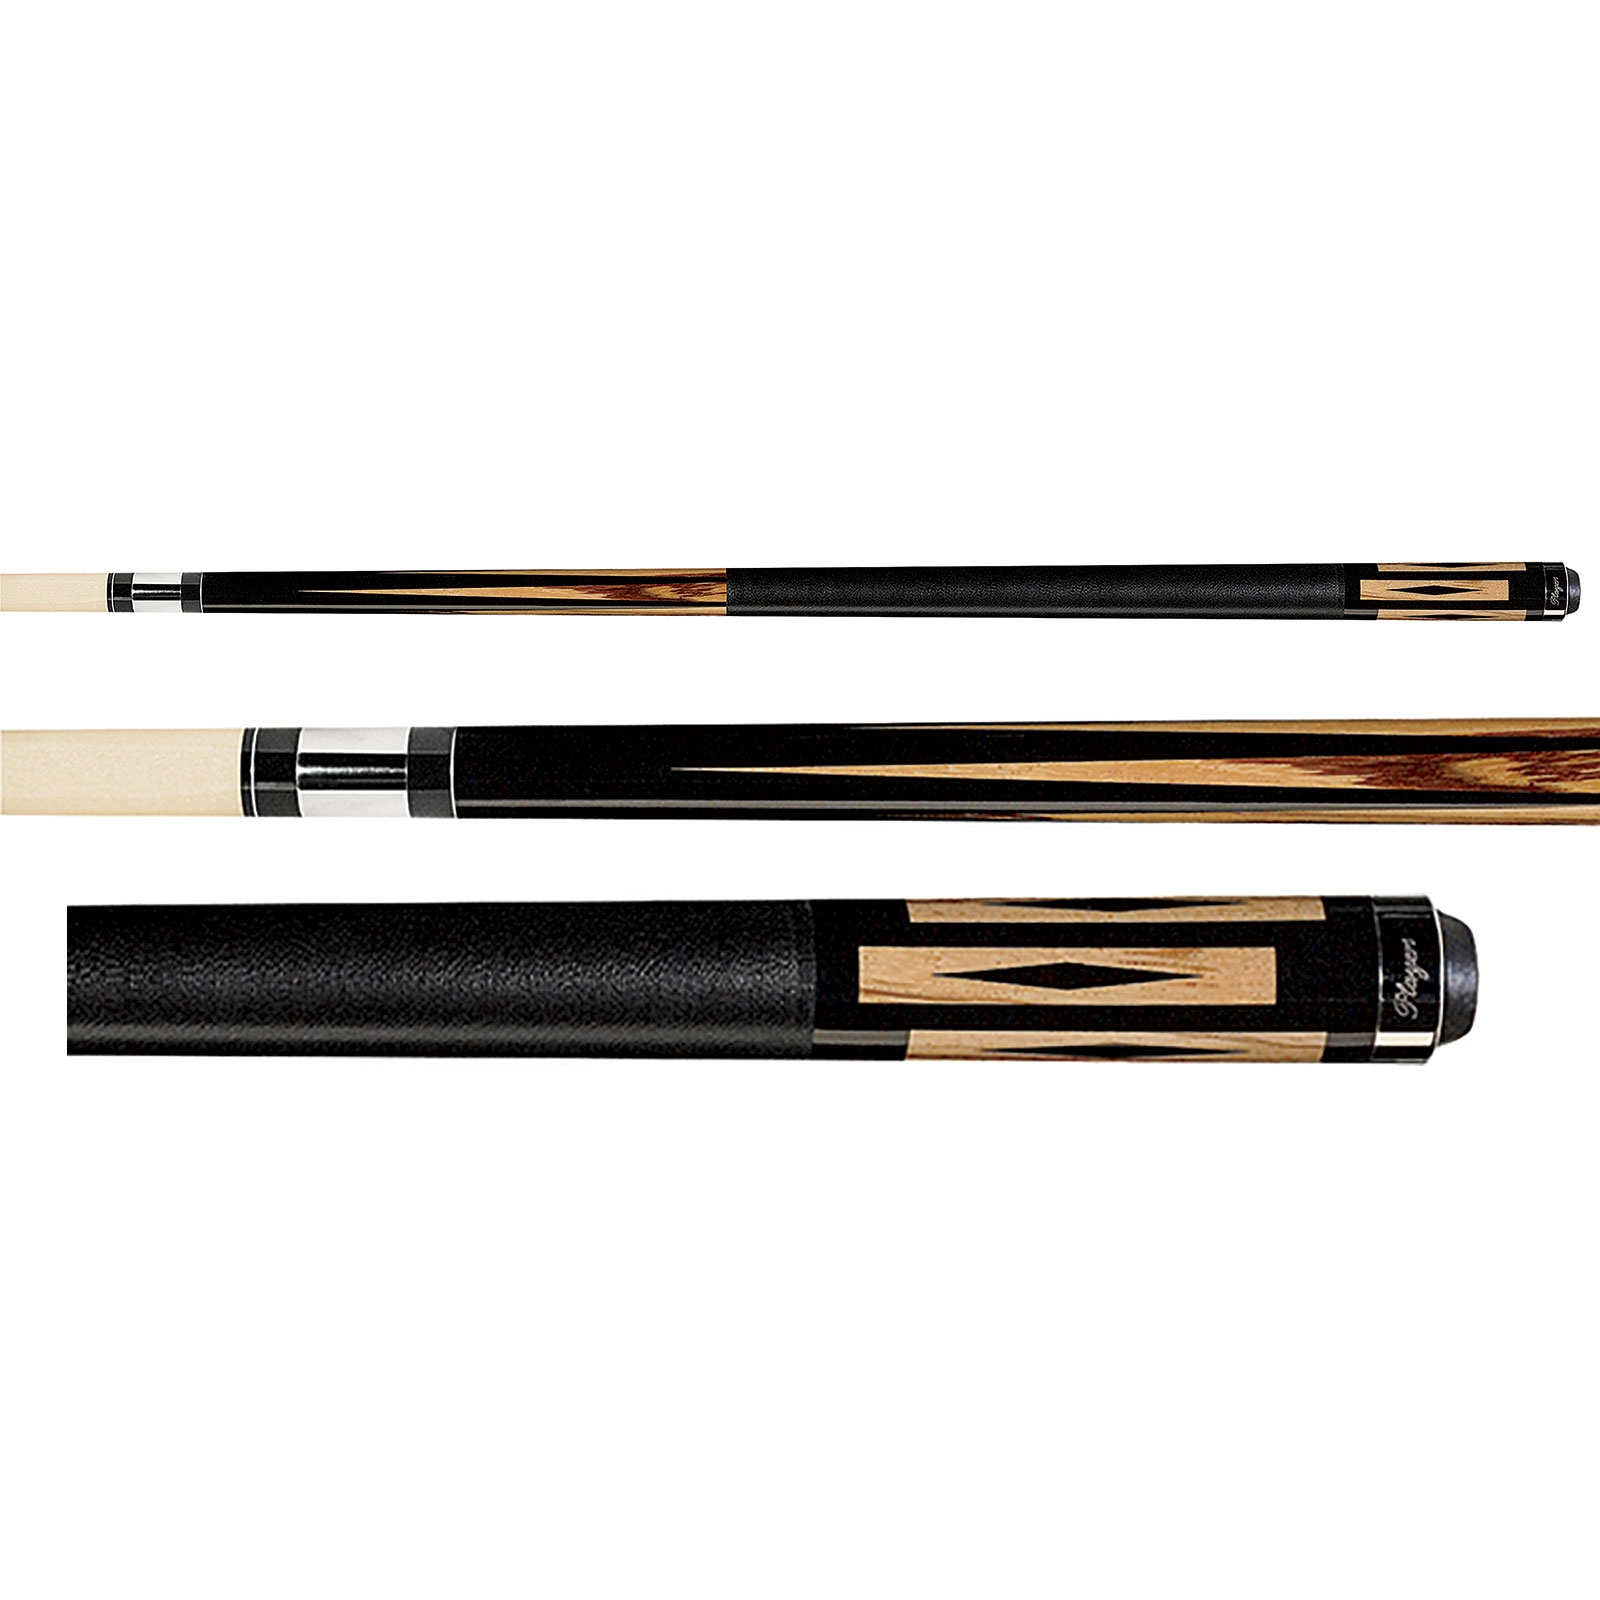 Players Exotic Design Series E-5100 Sneaky Pete Two-Piece Pool Cue Style 21 oz Cue and Case